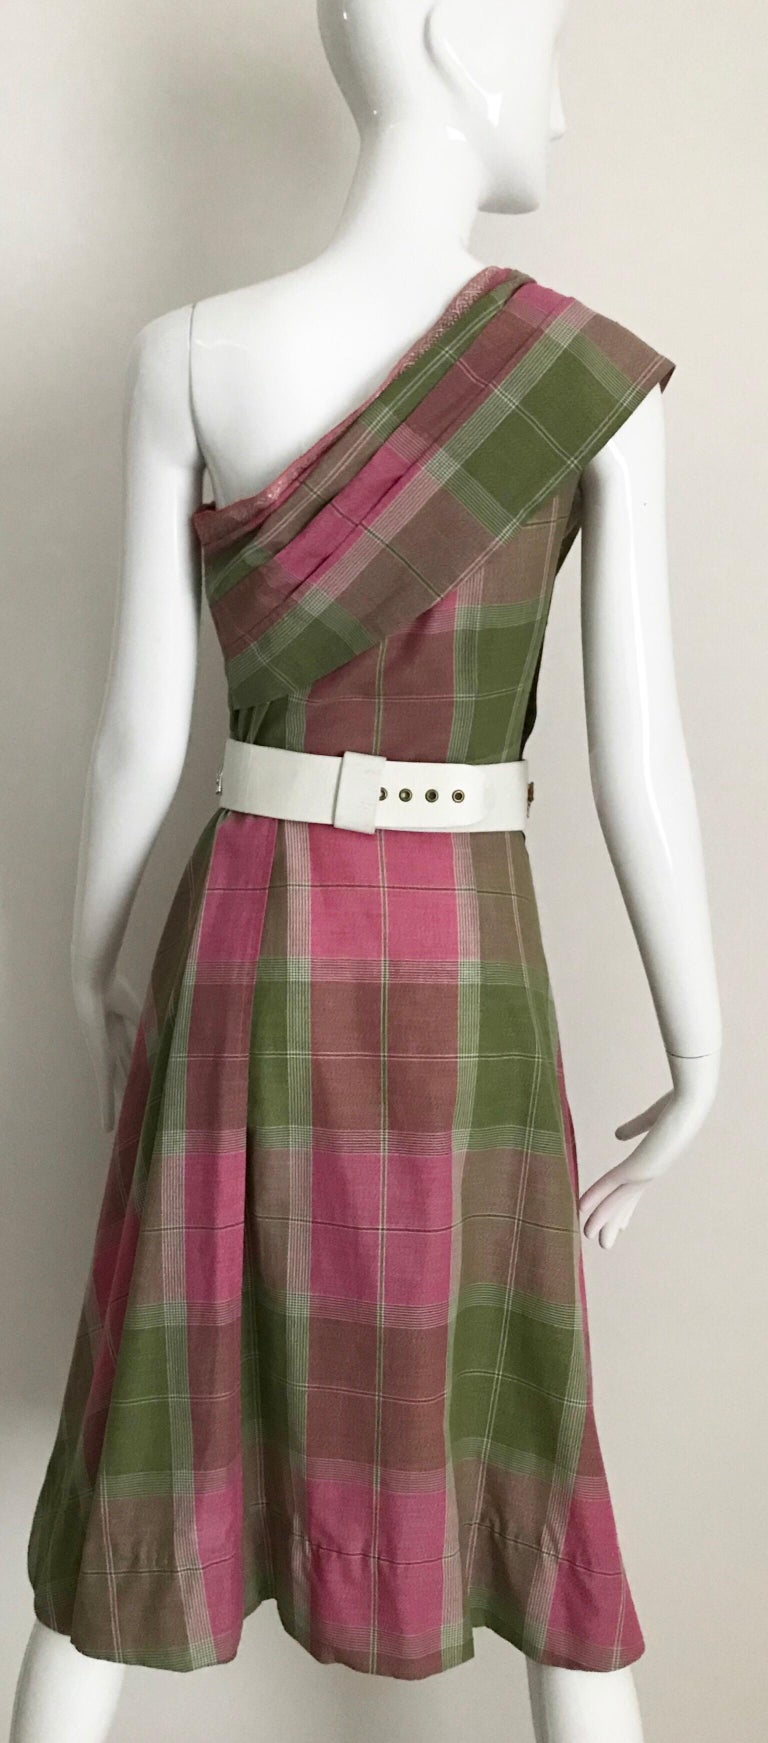 Vintage Tina Lesser Pink and Green Plaid Cotton Dress For Sale 4